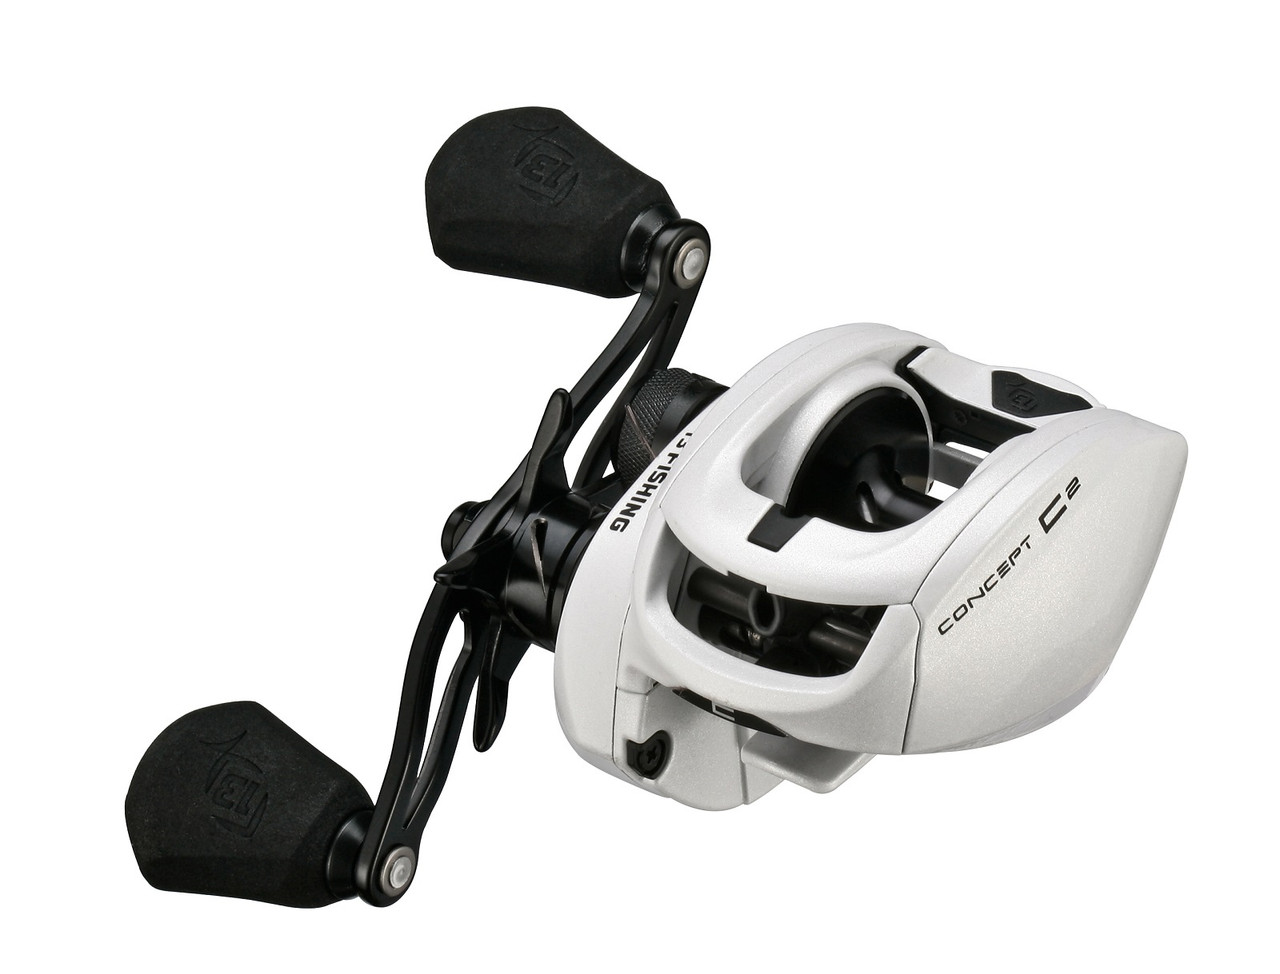 13 Fishing Concept C Gen2 Bait Casting Fishing Reel